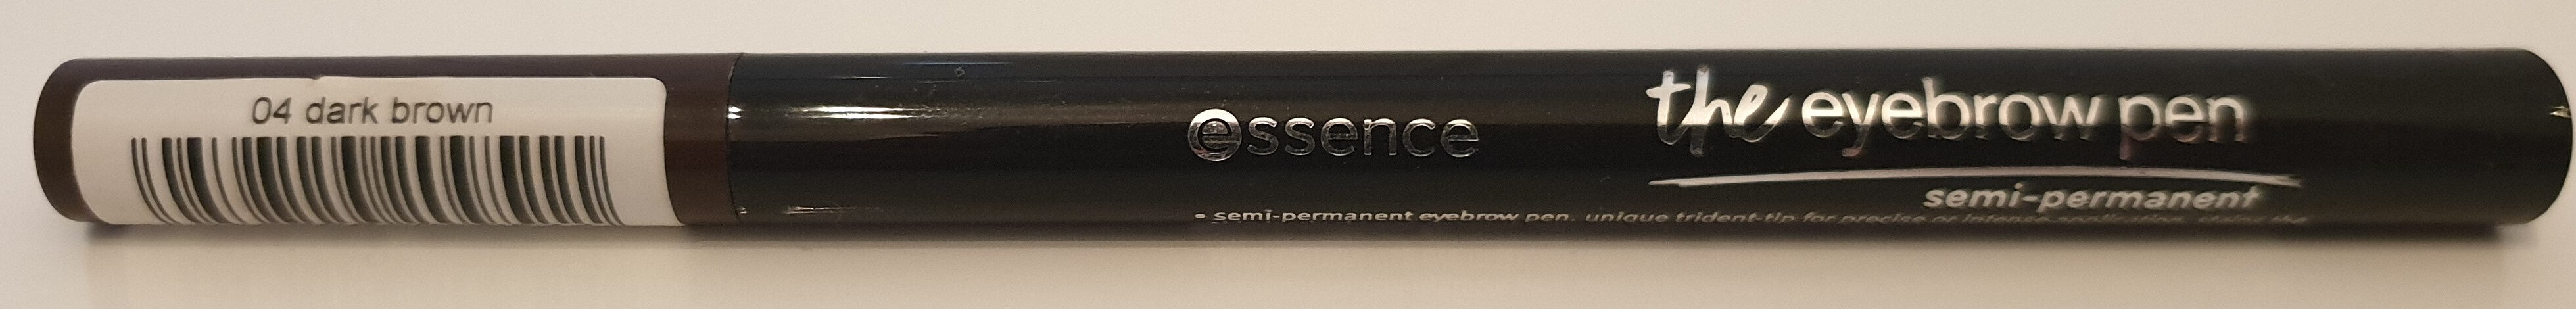 the eyebrow pen, semi-permanent, 04 dark brown - Product